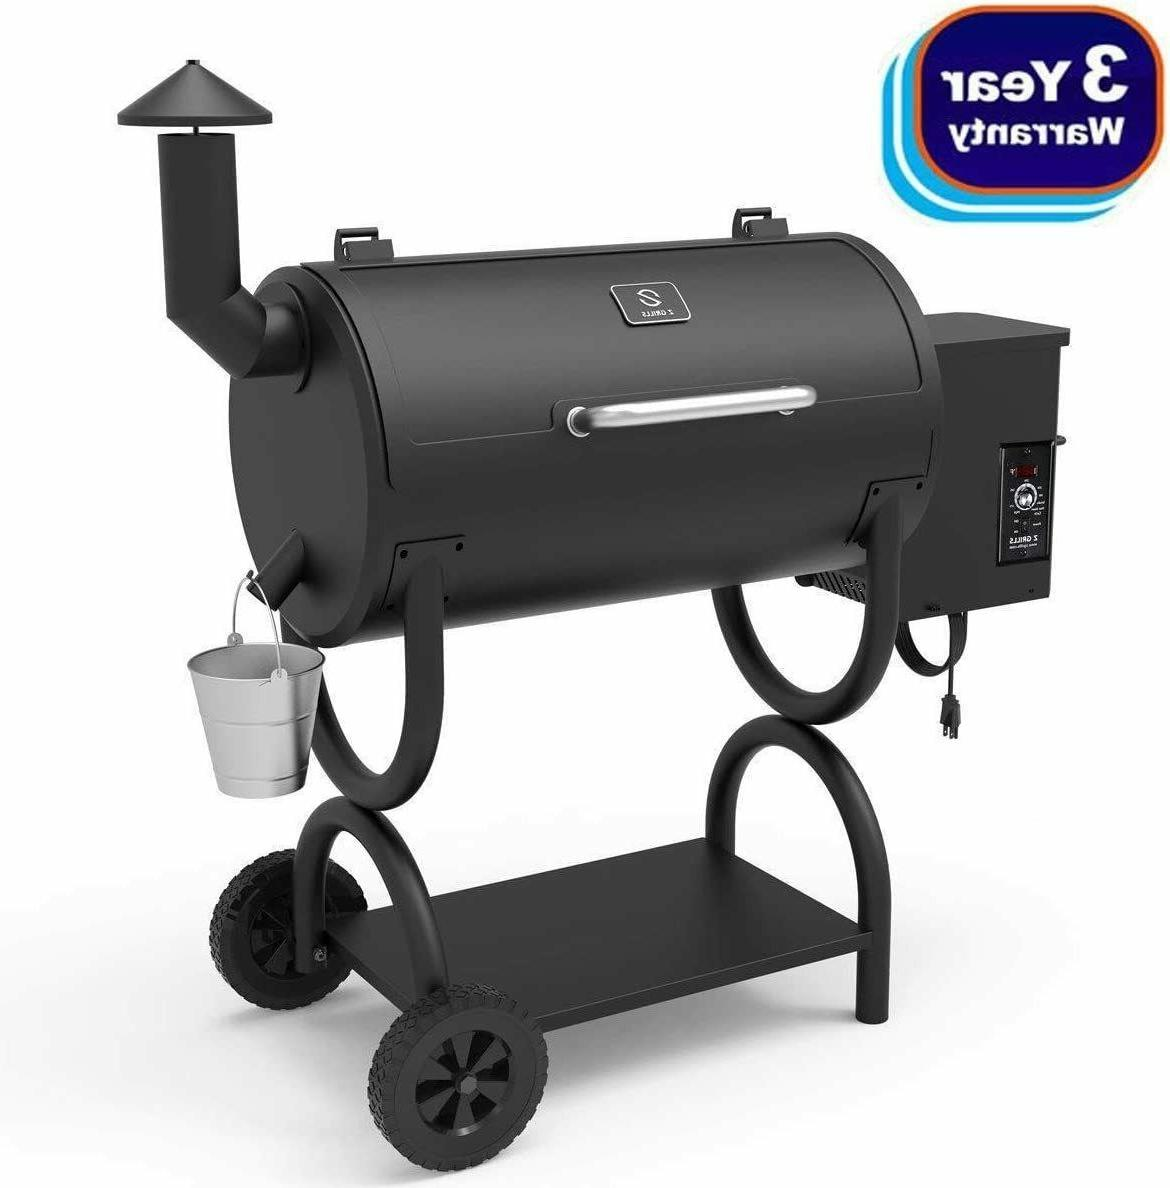 2020 newest wood pellet grill and smoker